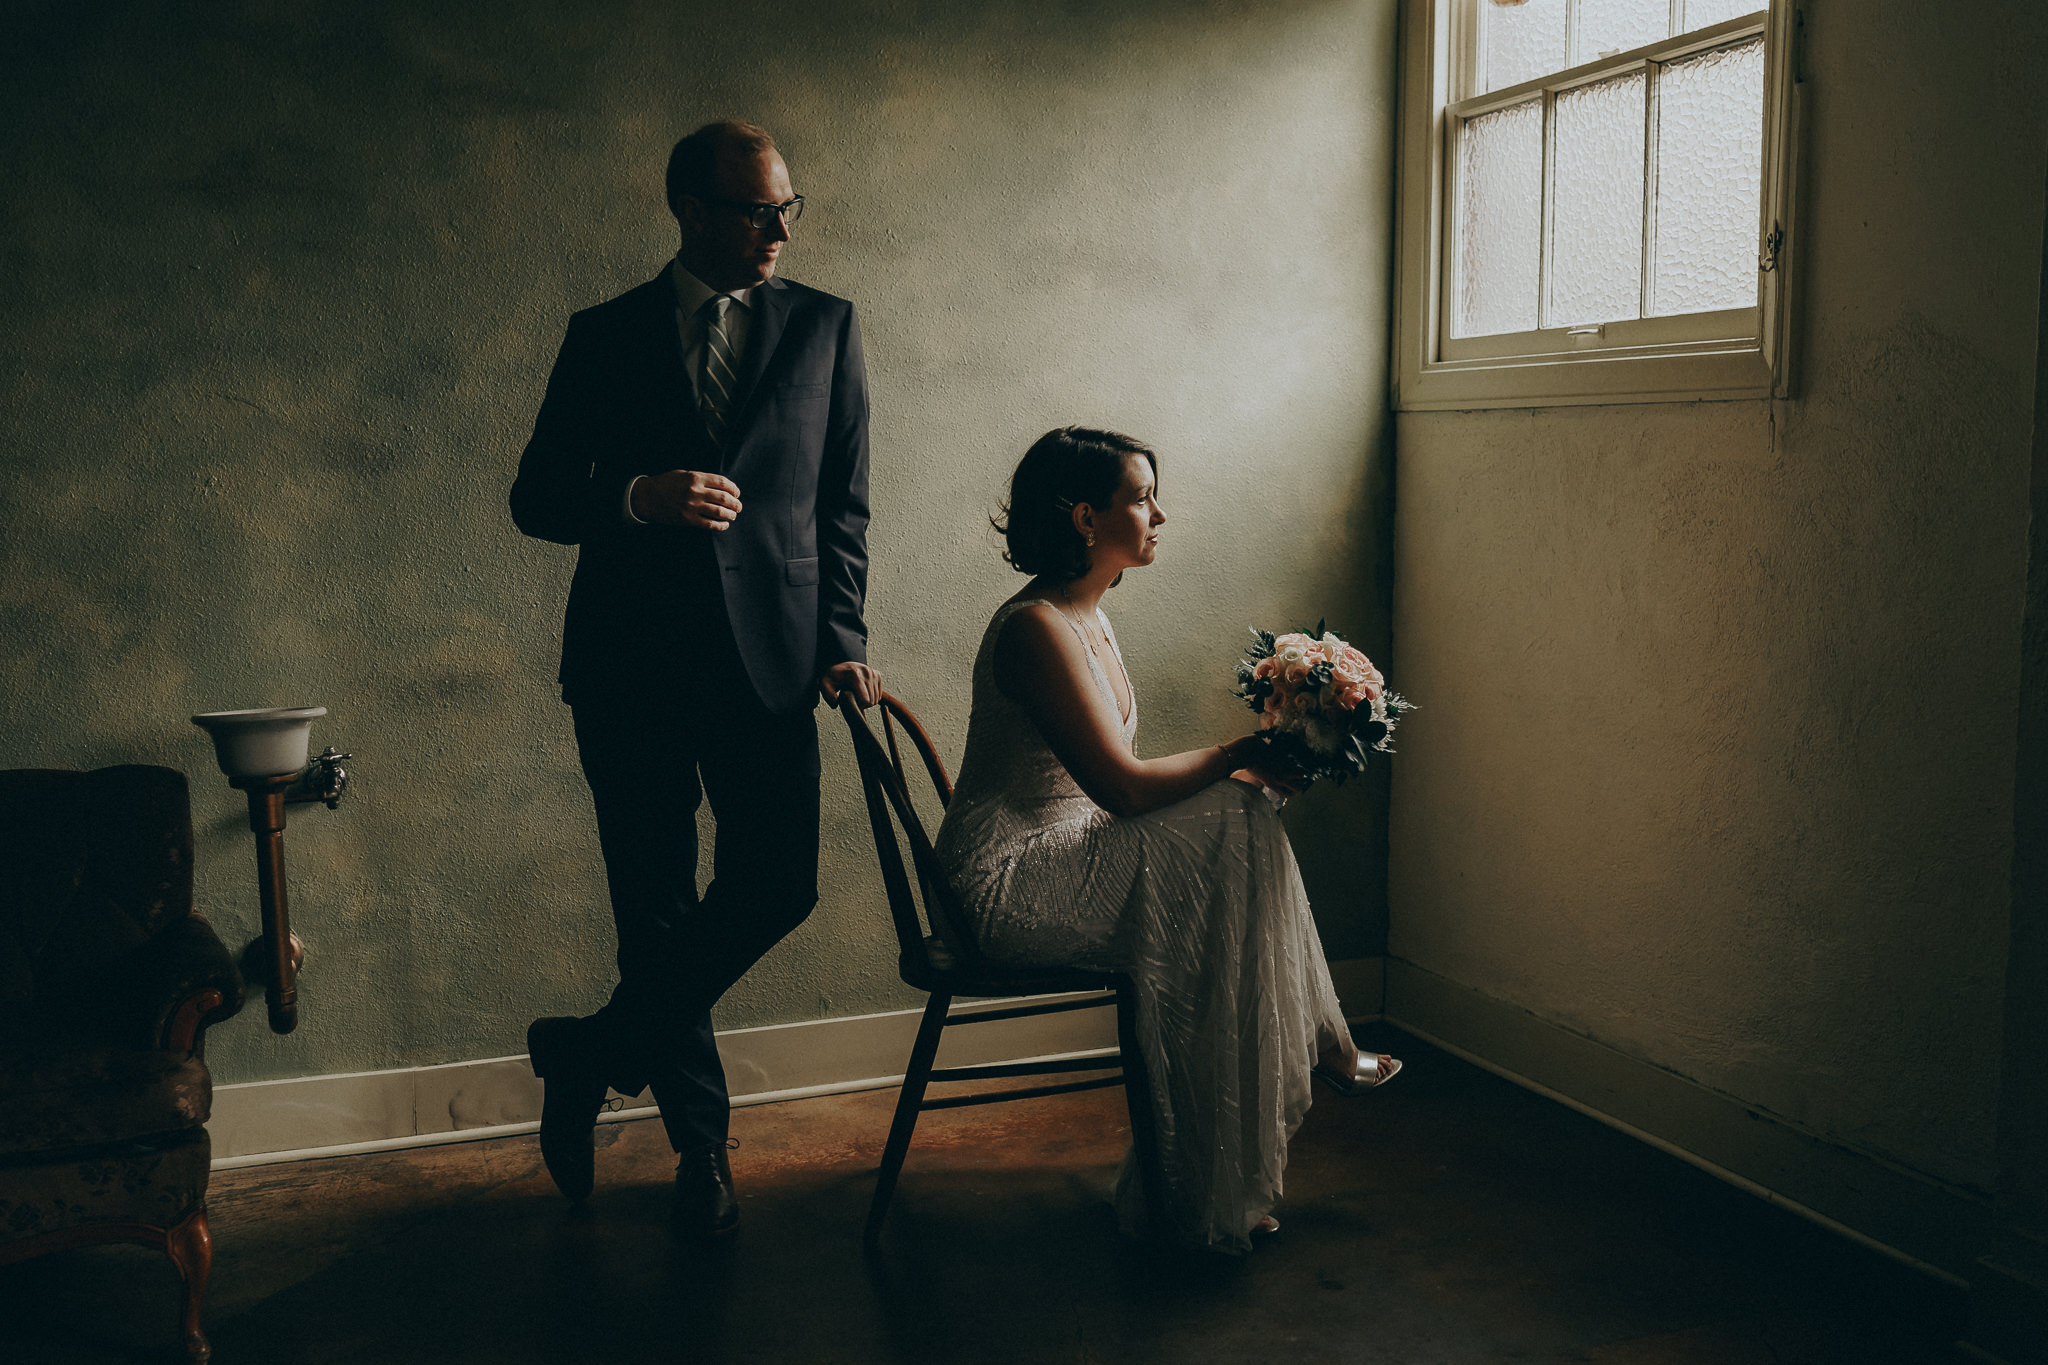 A recent favorite wedding image I've shot.